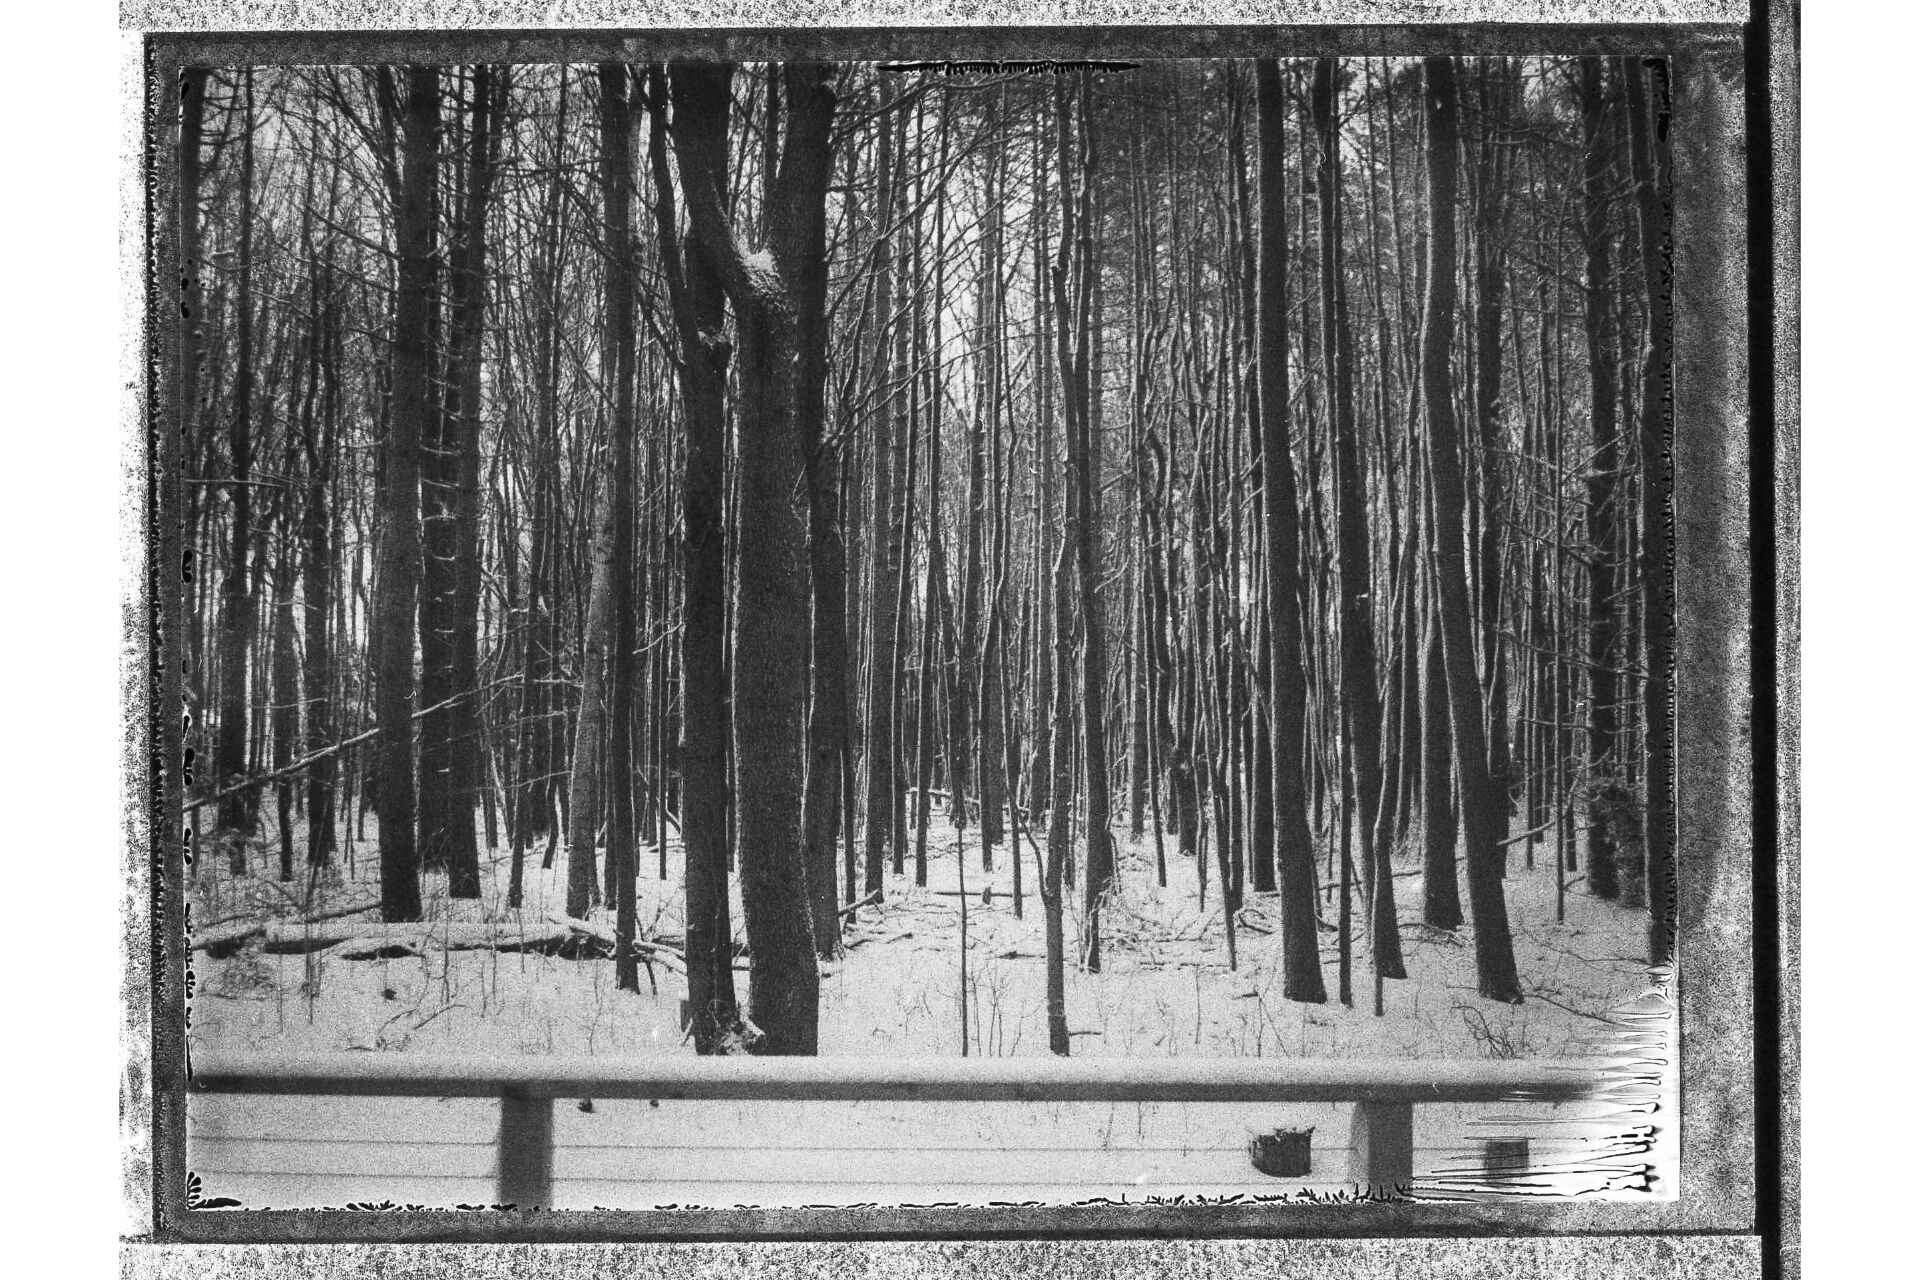 Woods shot in black and white FB-3000b film